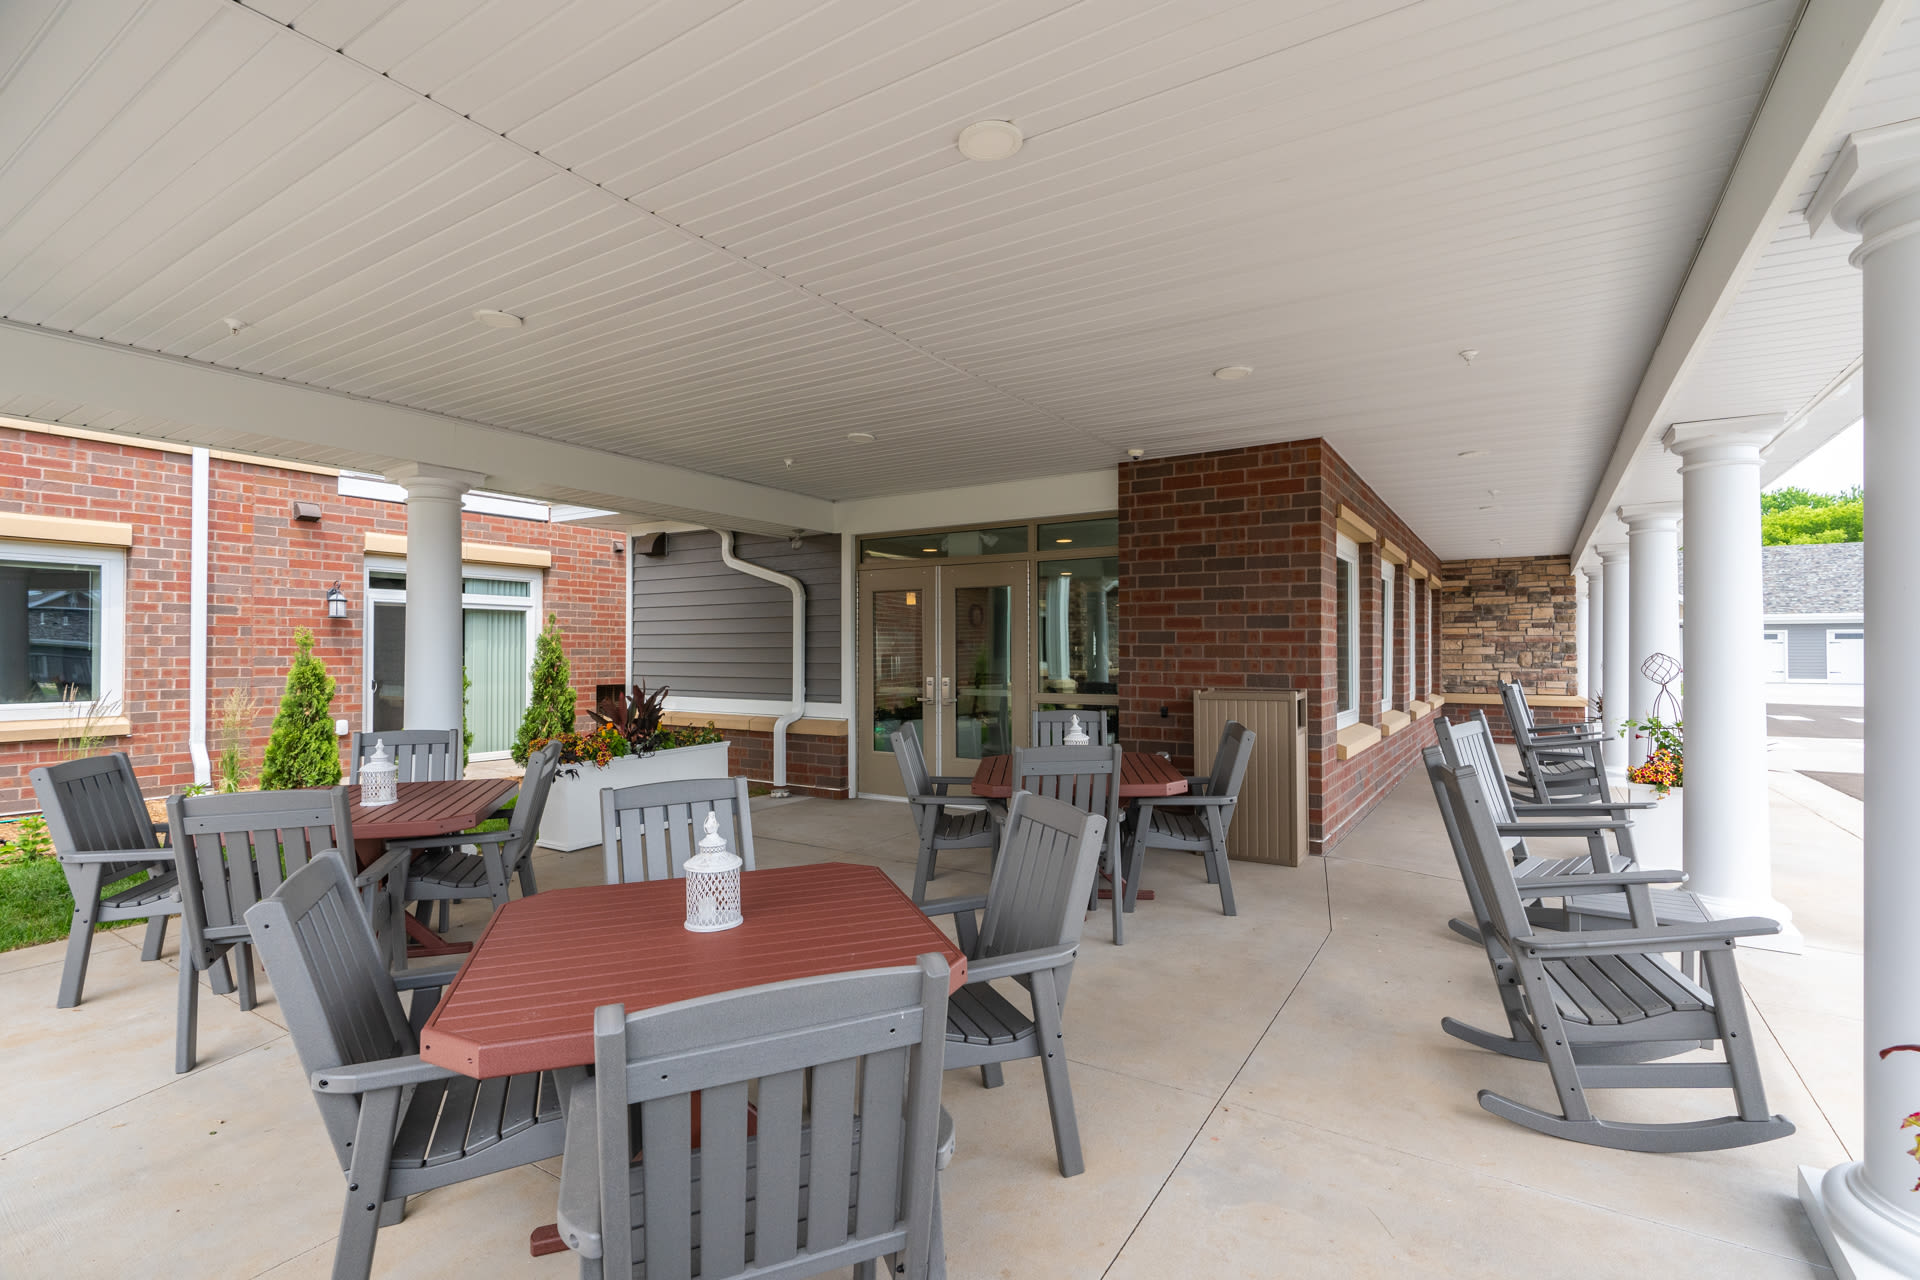 Outdoor dining area at The Fields at Arbor Glen in Lake Elmo, Minnesota